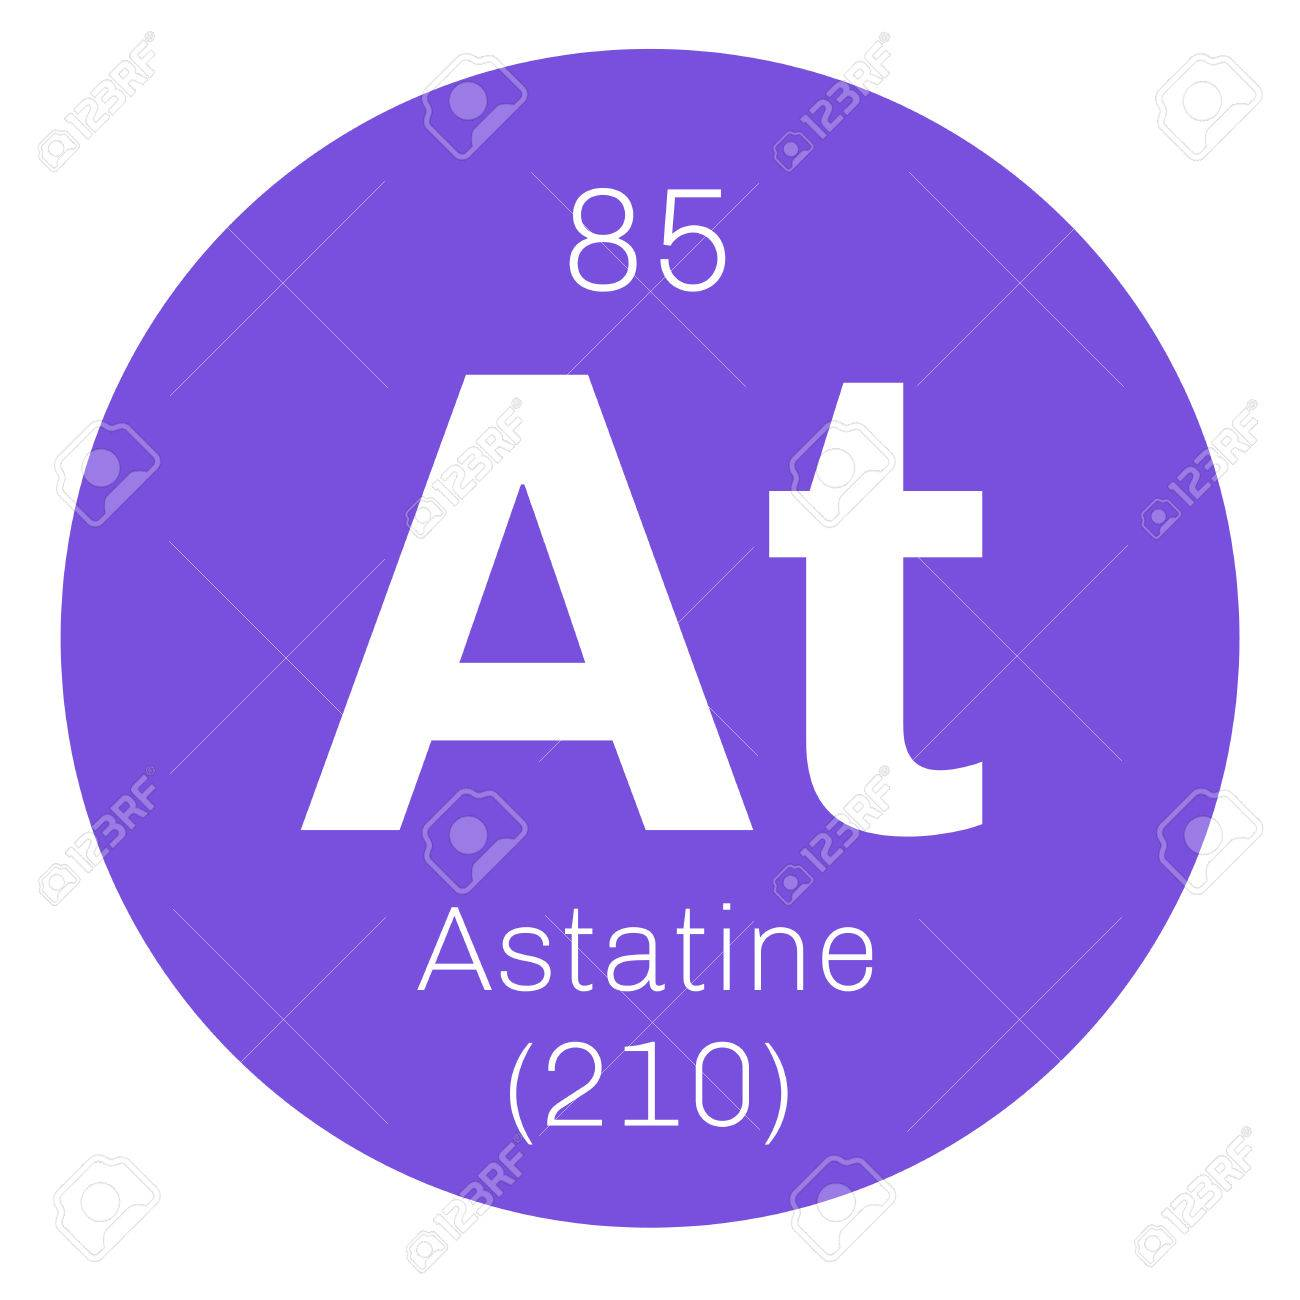 Astatine chemical element radioactive chemical element colored chemical element of periodic table astatine chemical element radioactive chemical element colored icon with atomic number and atomic weight urtaz Choice Image